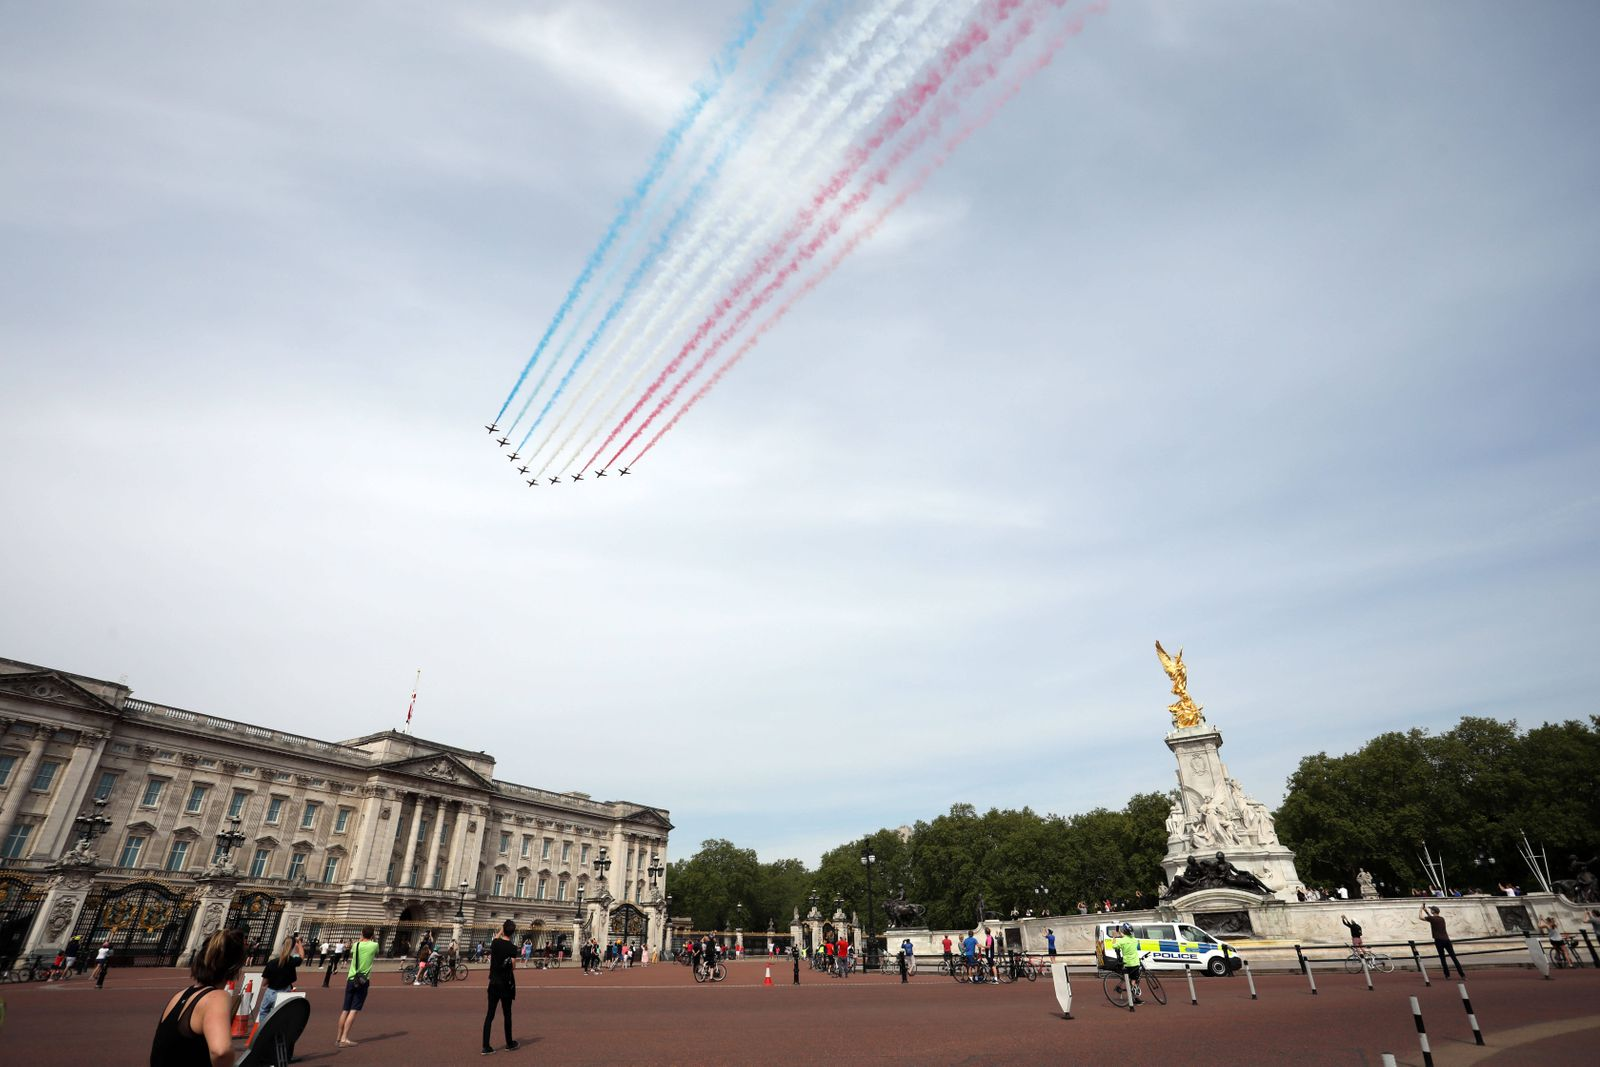 Day Forty Six of Lockdown, in London, which coincides with the 75th Anniversary celebrations of VE Day. The Red Arrows f